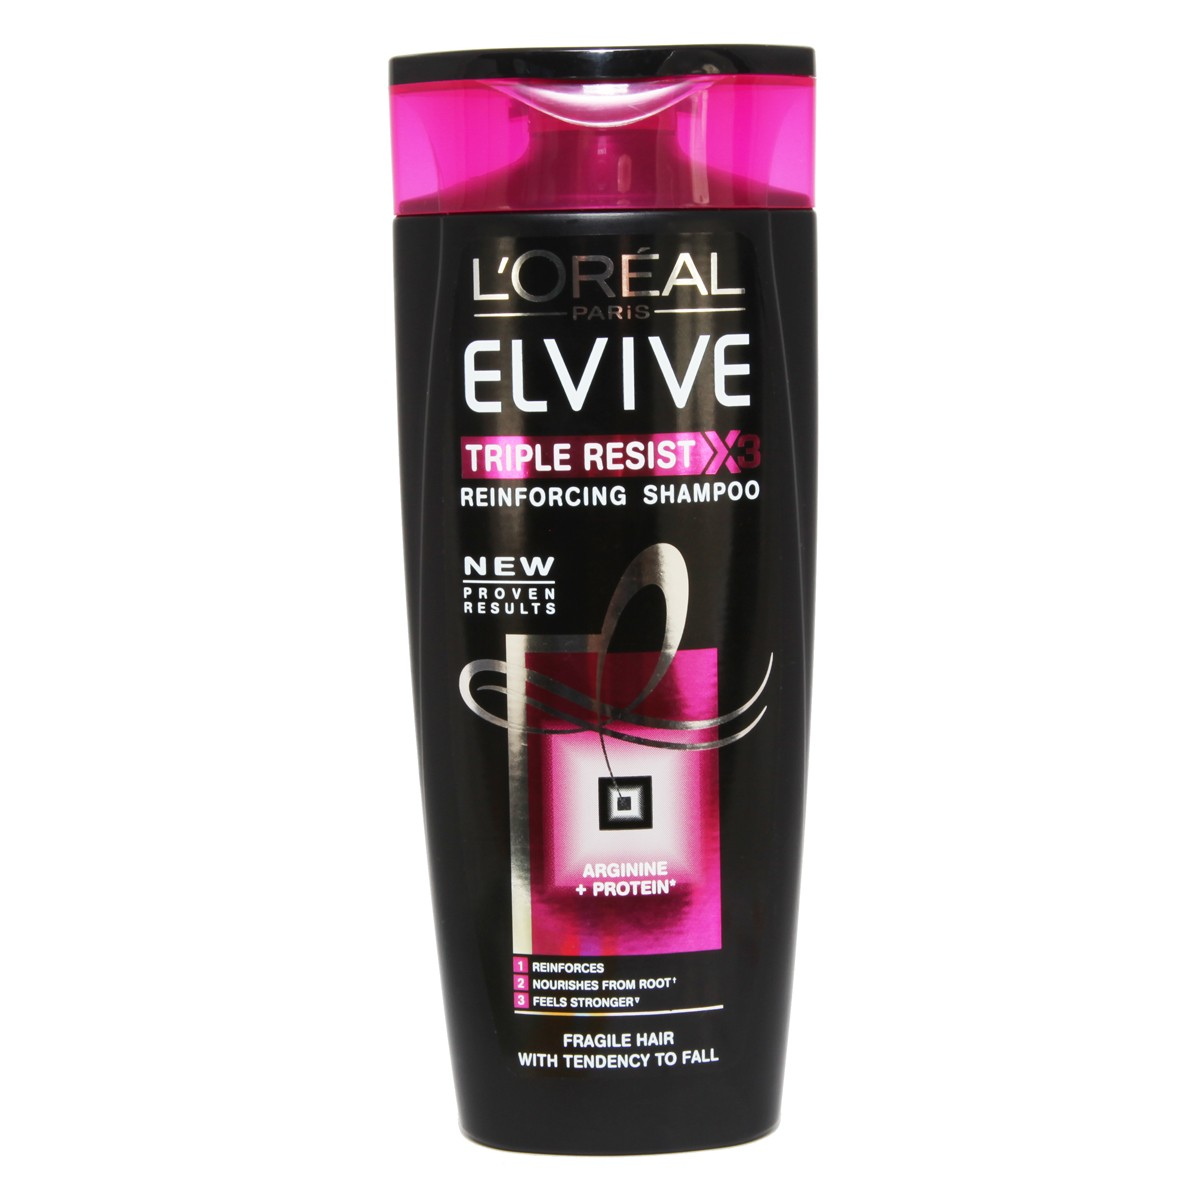 L'Oreal Paris Elvive Triple Resist Reinforcing Shampoo